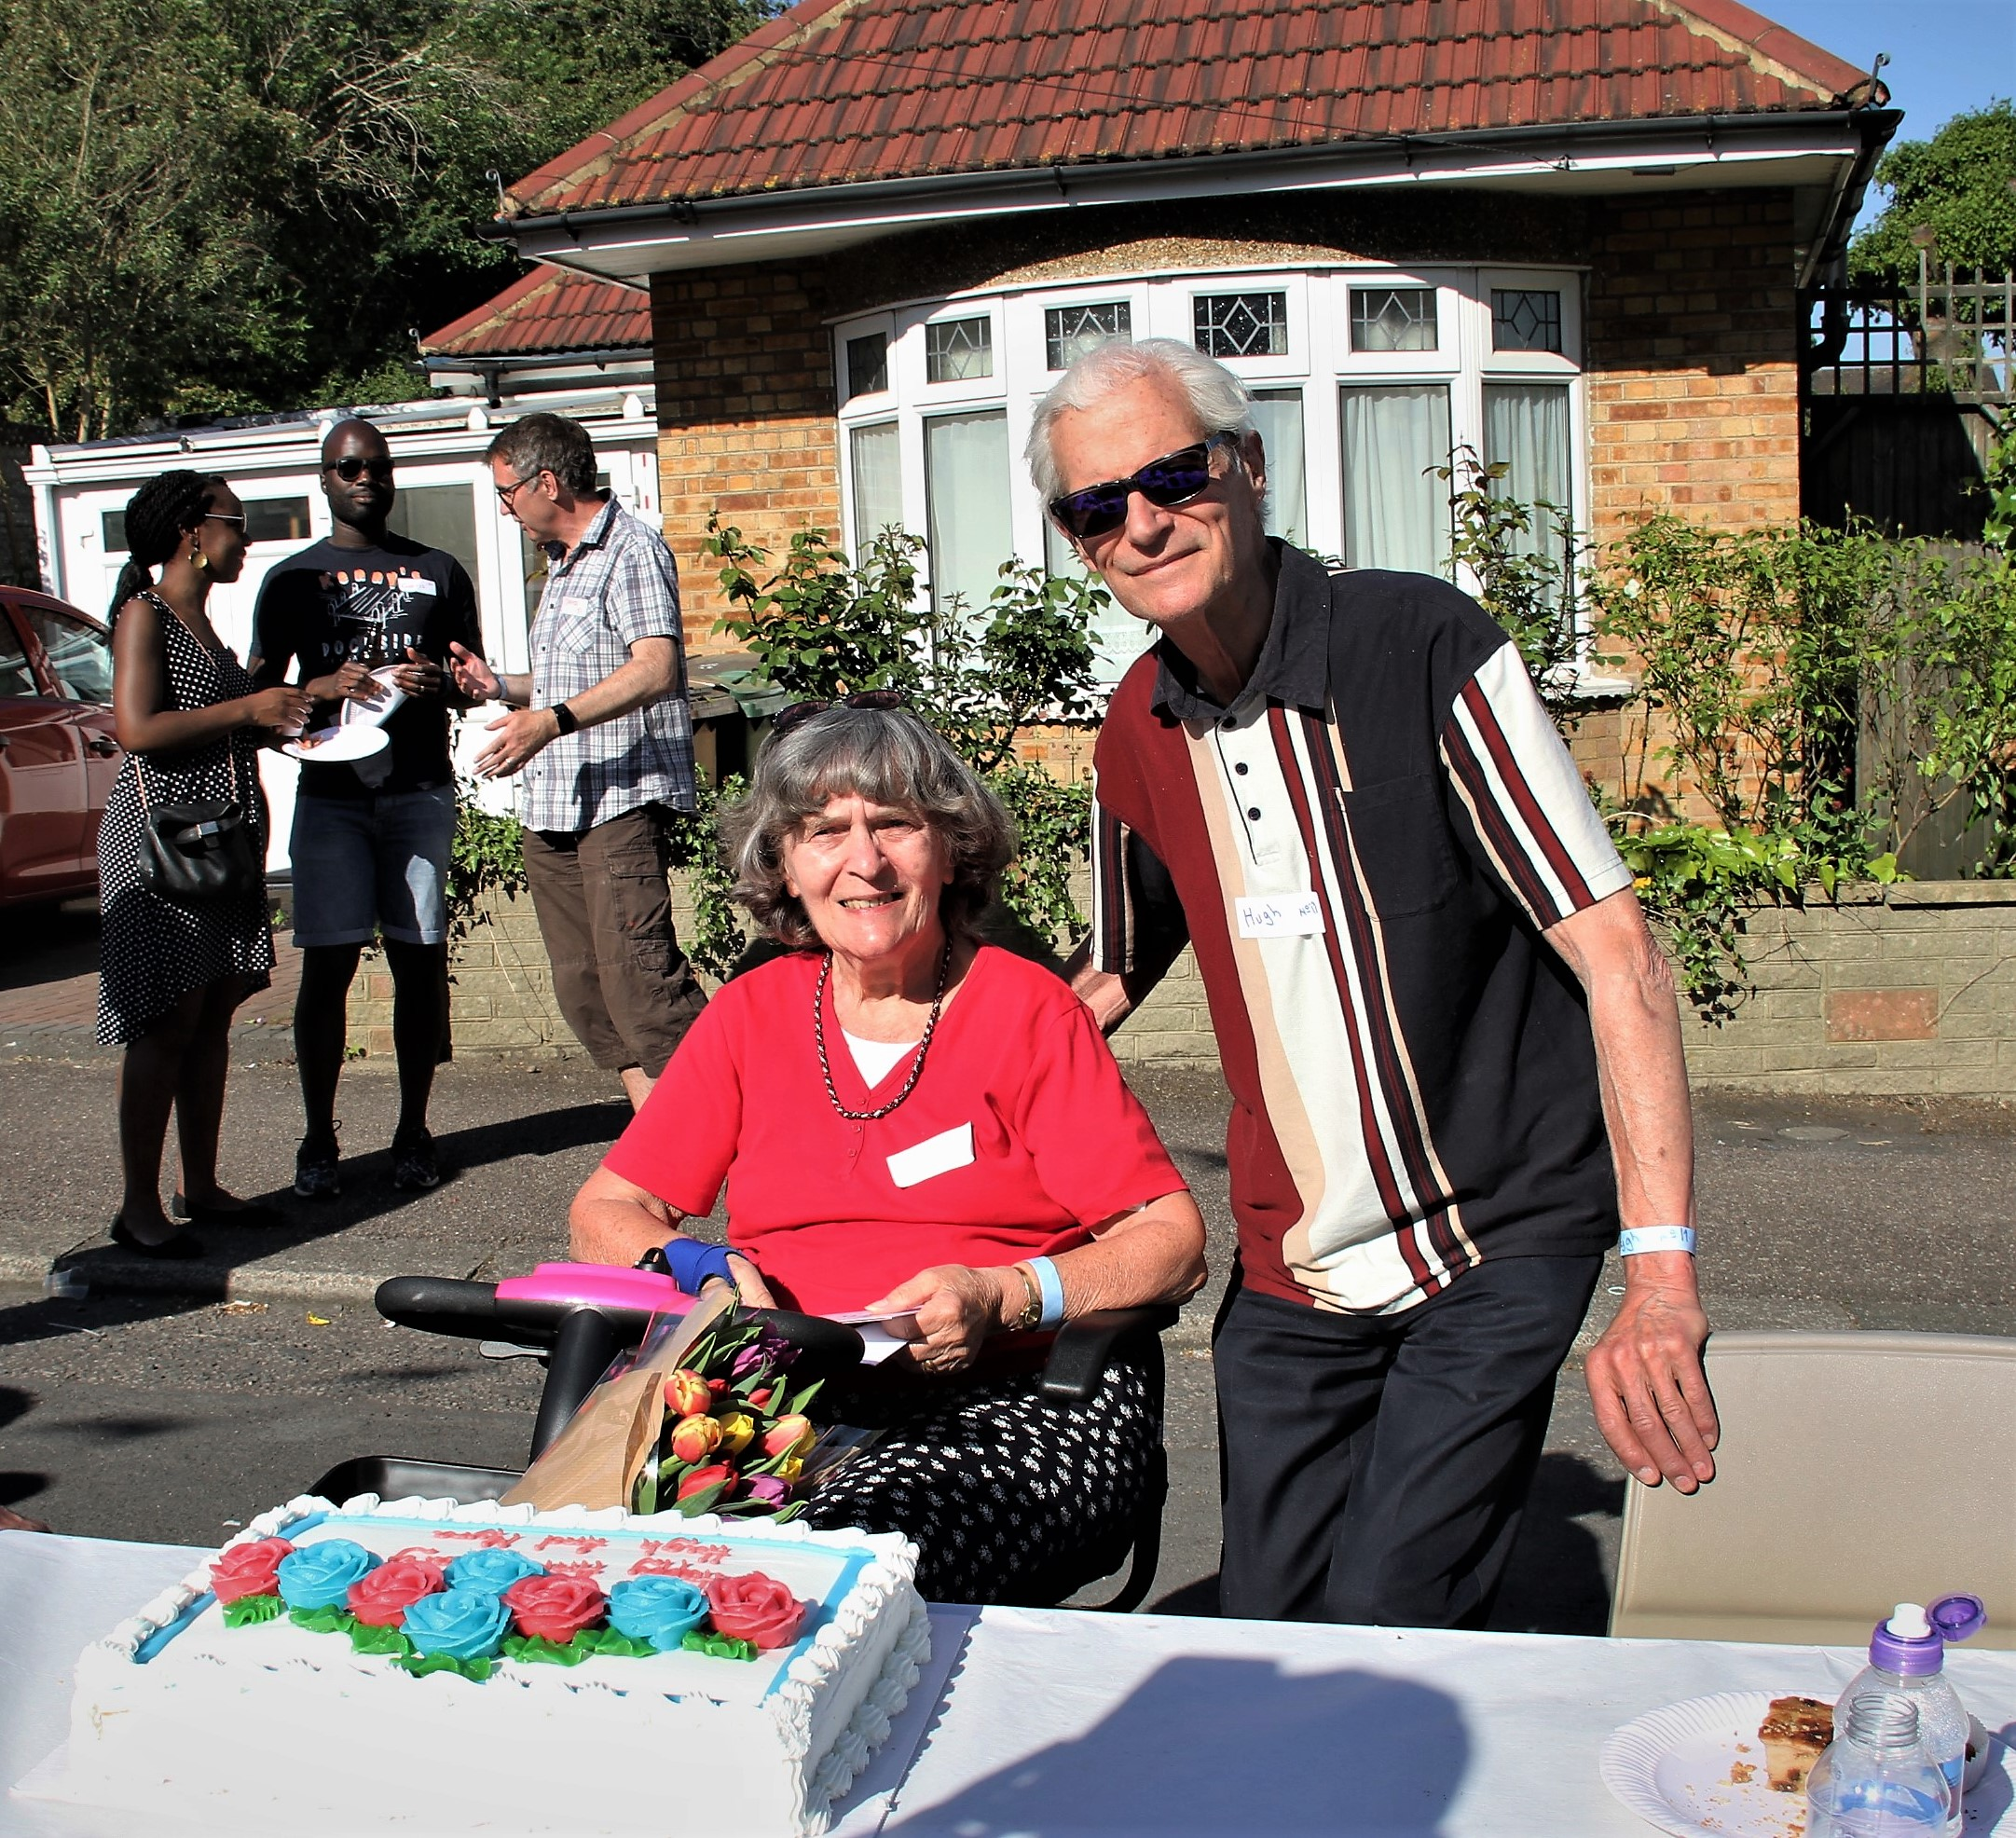 Families living in Whitehall Gardens in Chingford gathered for a street party on Saturday to celebrate the royal wedding.